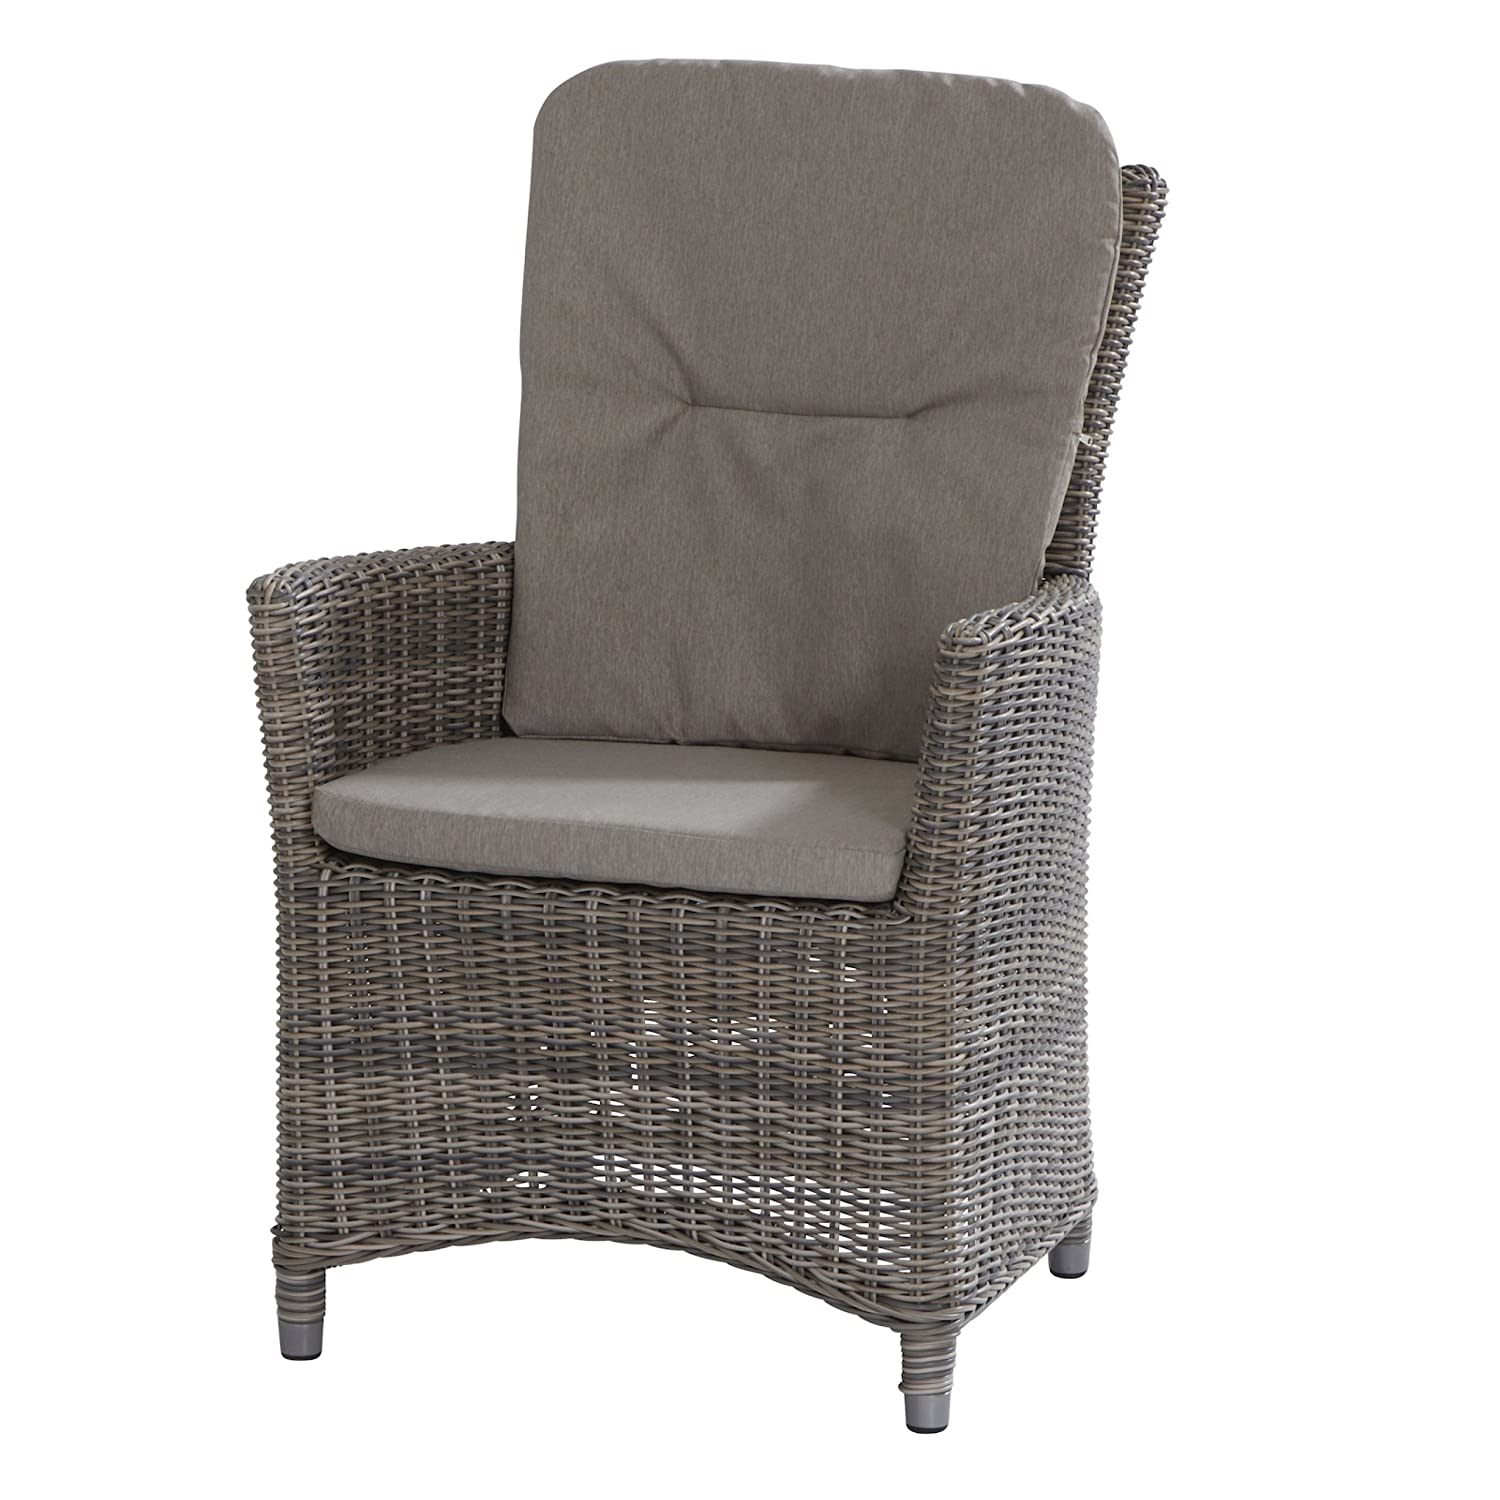 Aqua-Saar Dining Sessel Athen Polyrattan Roca light grey inkl. 2 Kissen AS37798 günstig